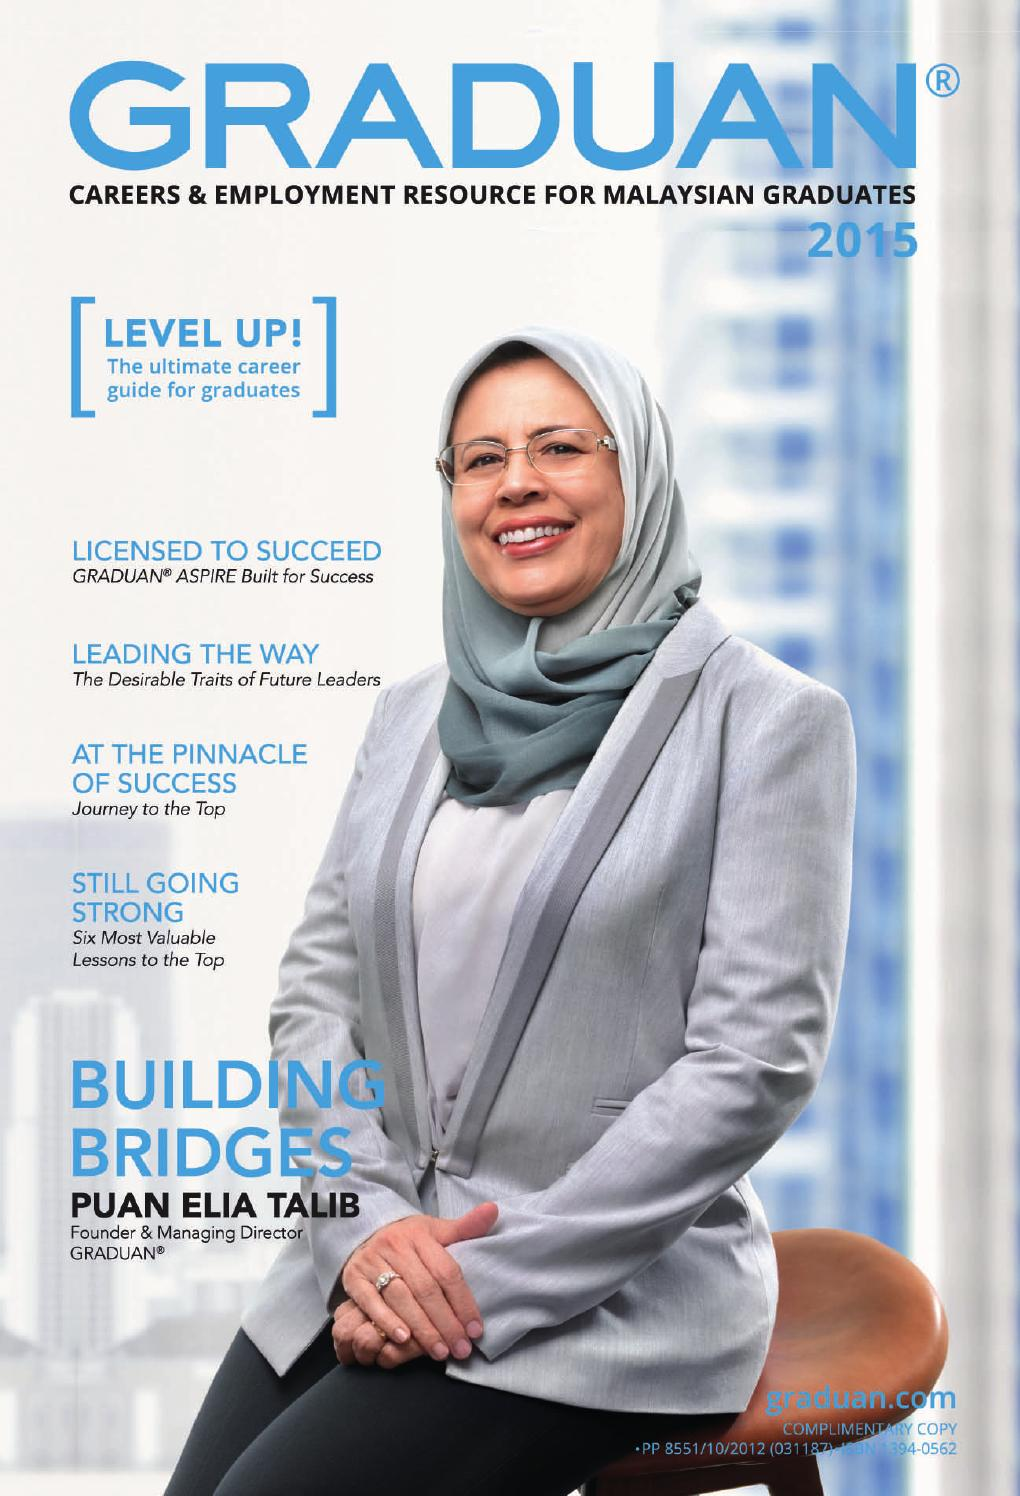 Founder of Graduan, Puan Elia Talib on the cover of the latest issue of Graduan.